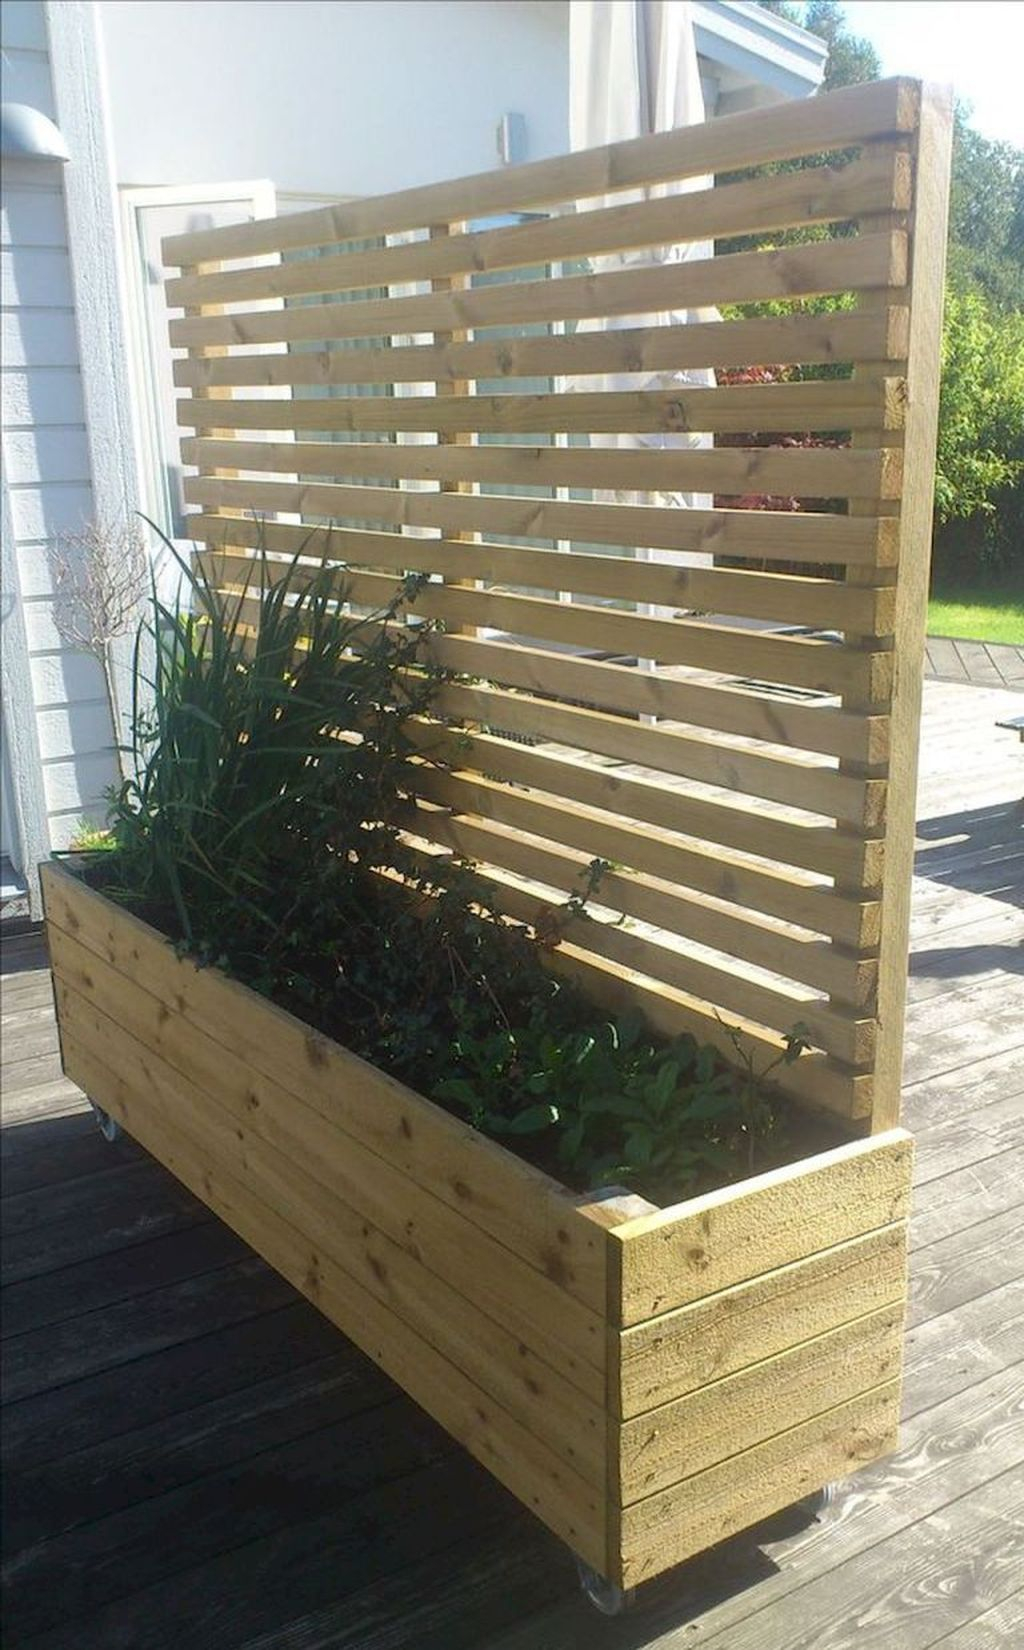 Captivating Diy Patio Gardens Ideas On A Budget To Try 18